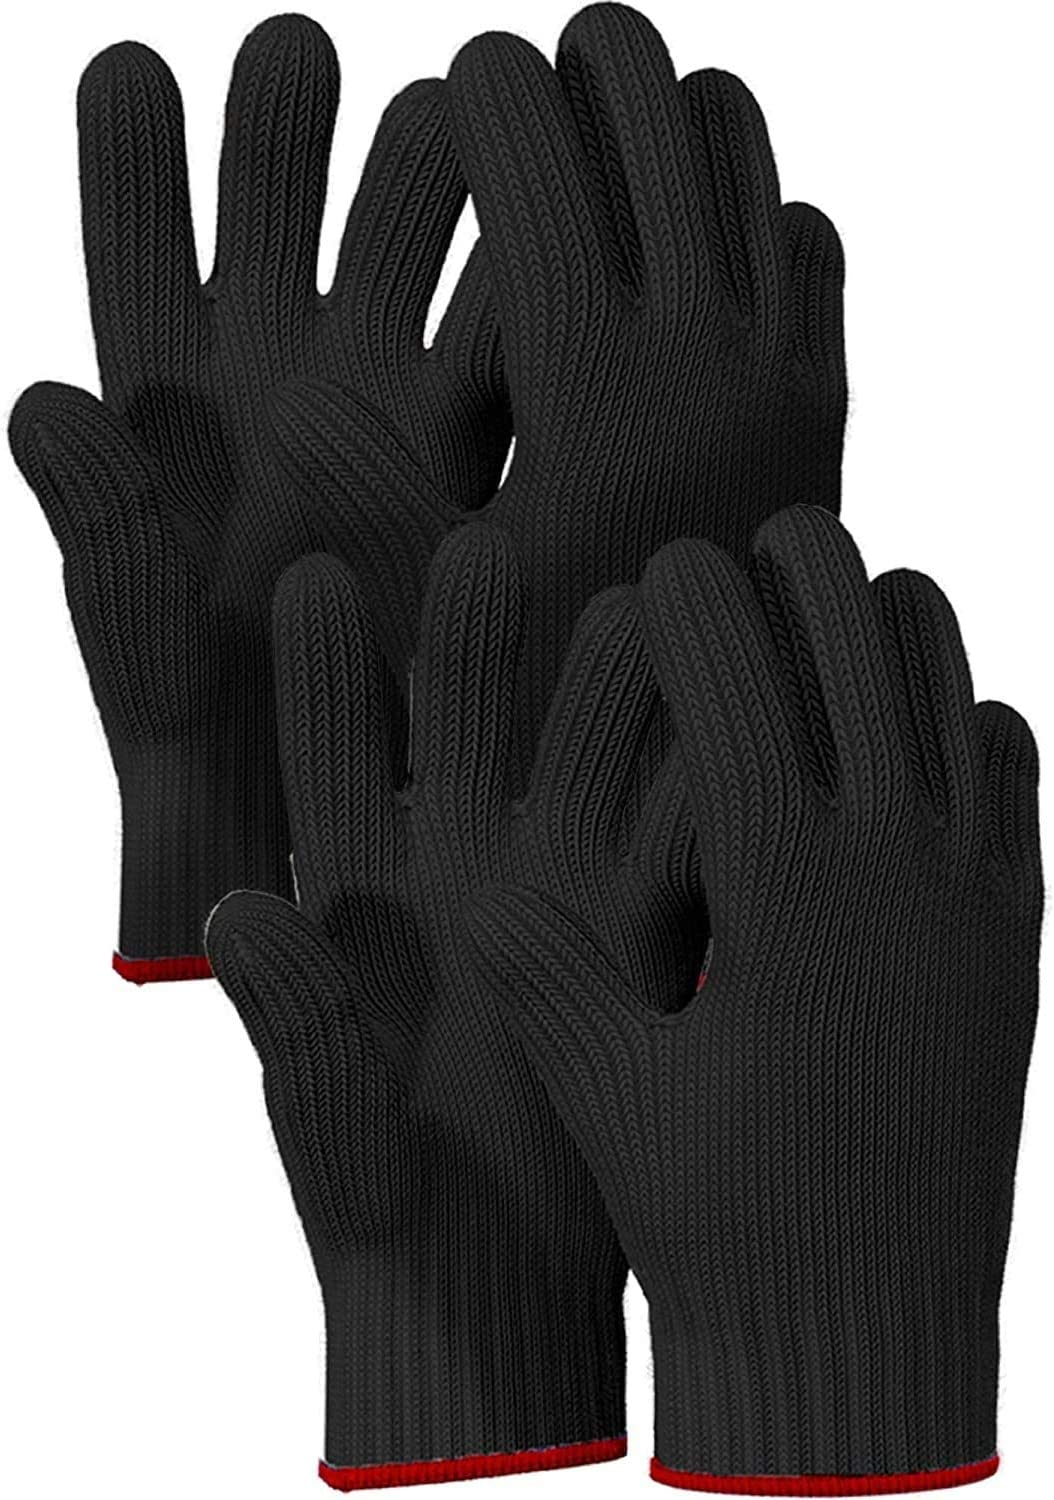 Challenge the lowest price of Japan ☆ Killer's Instinct Outdoors 2 Pairs Gloves Translated Oven Heat Gl Resistant